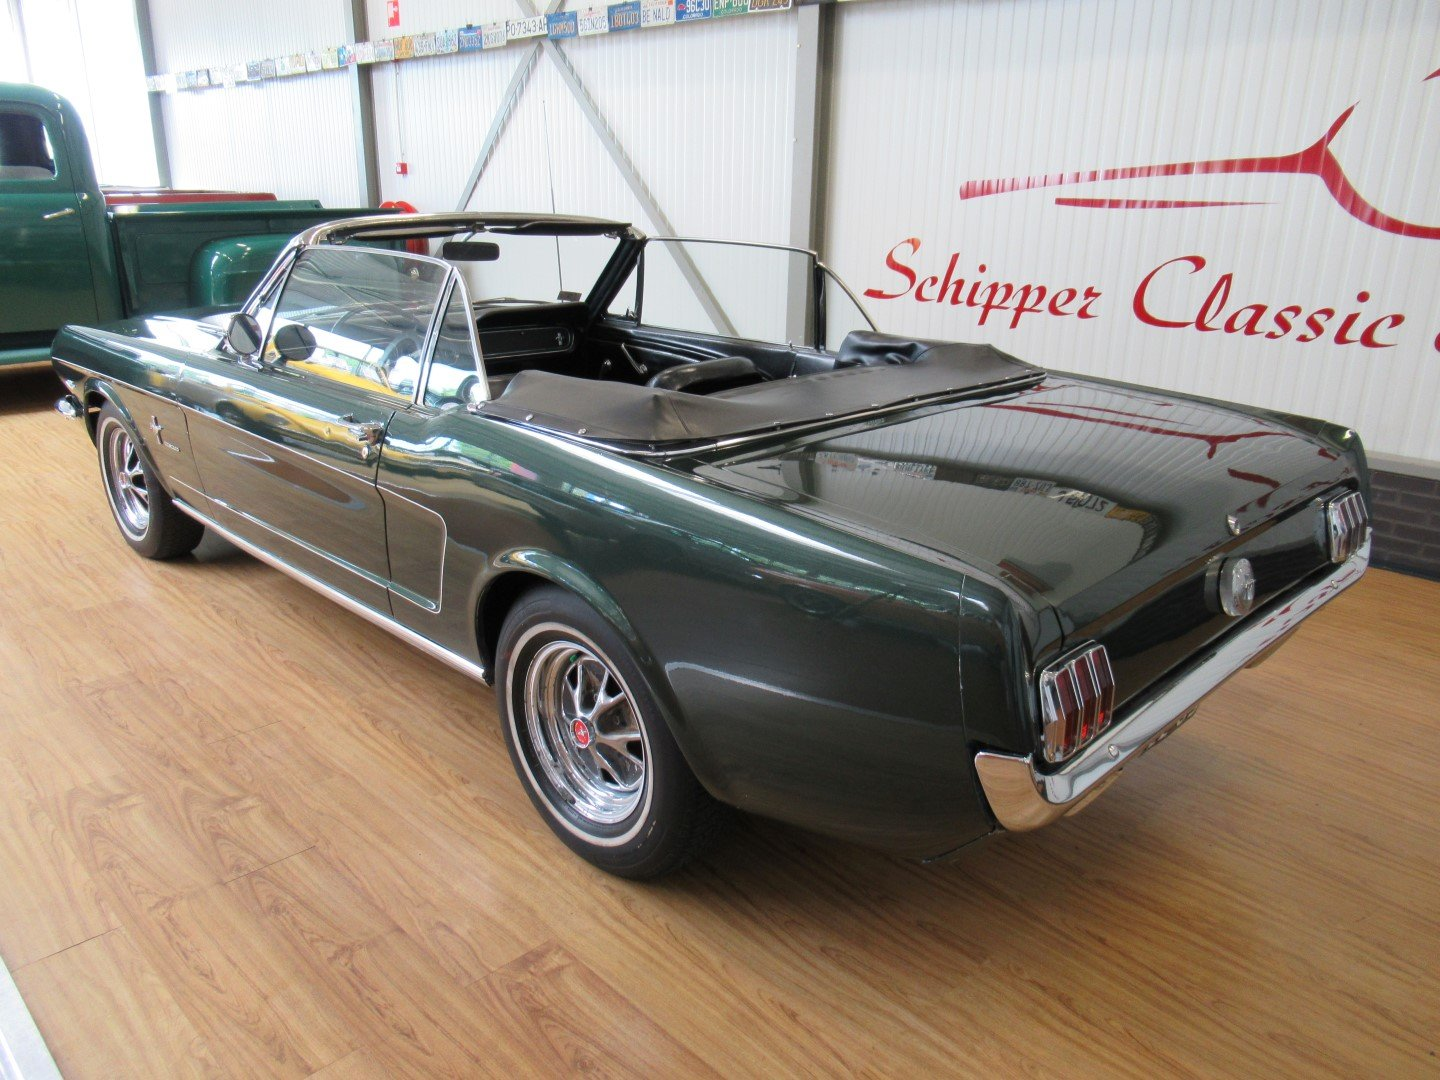 1966 Ford Mustang 289 V8 Cabrio 4 Speed Manual Second owner For Sale (picture 3 of 6)